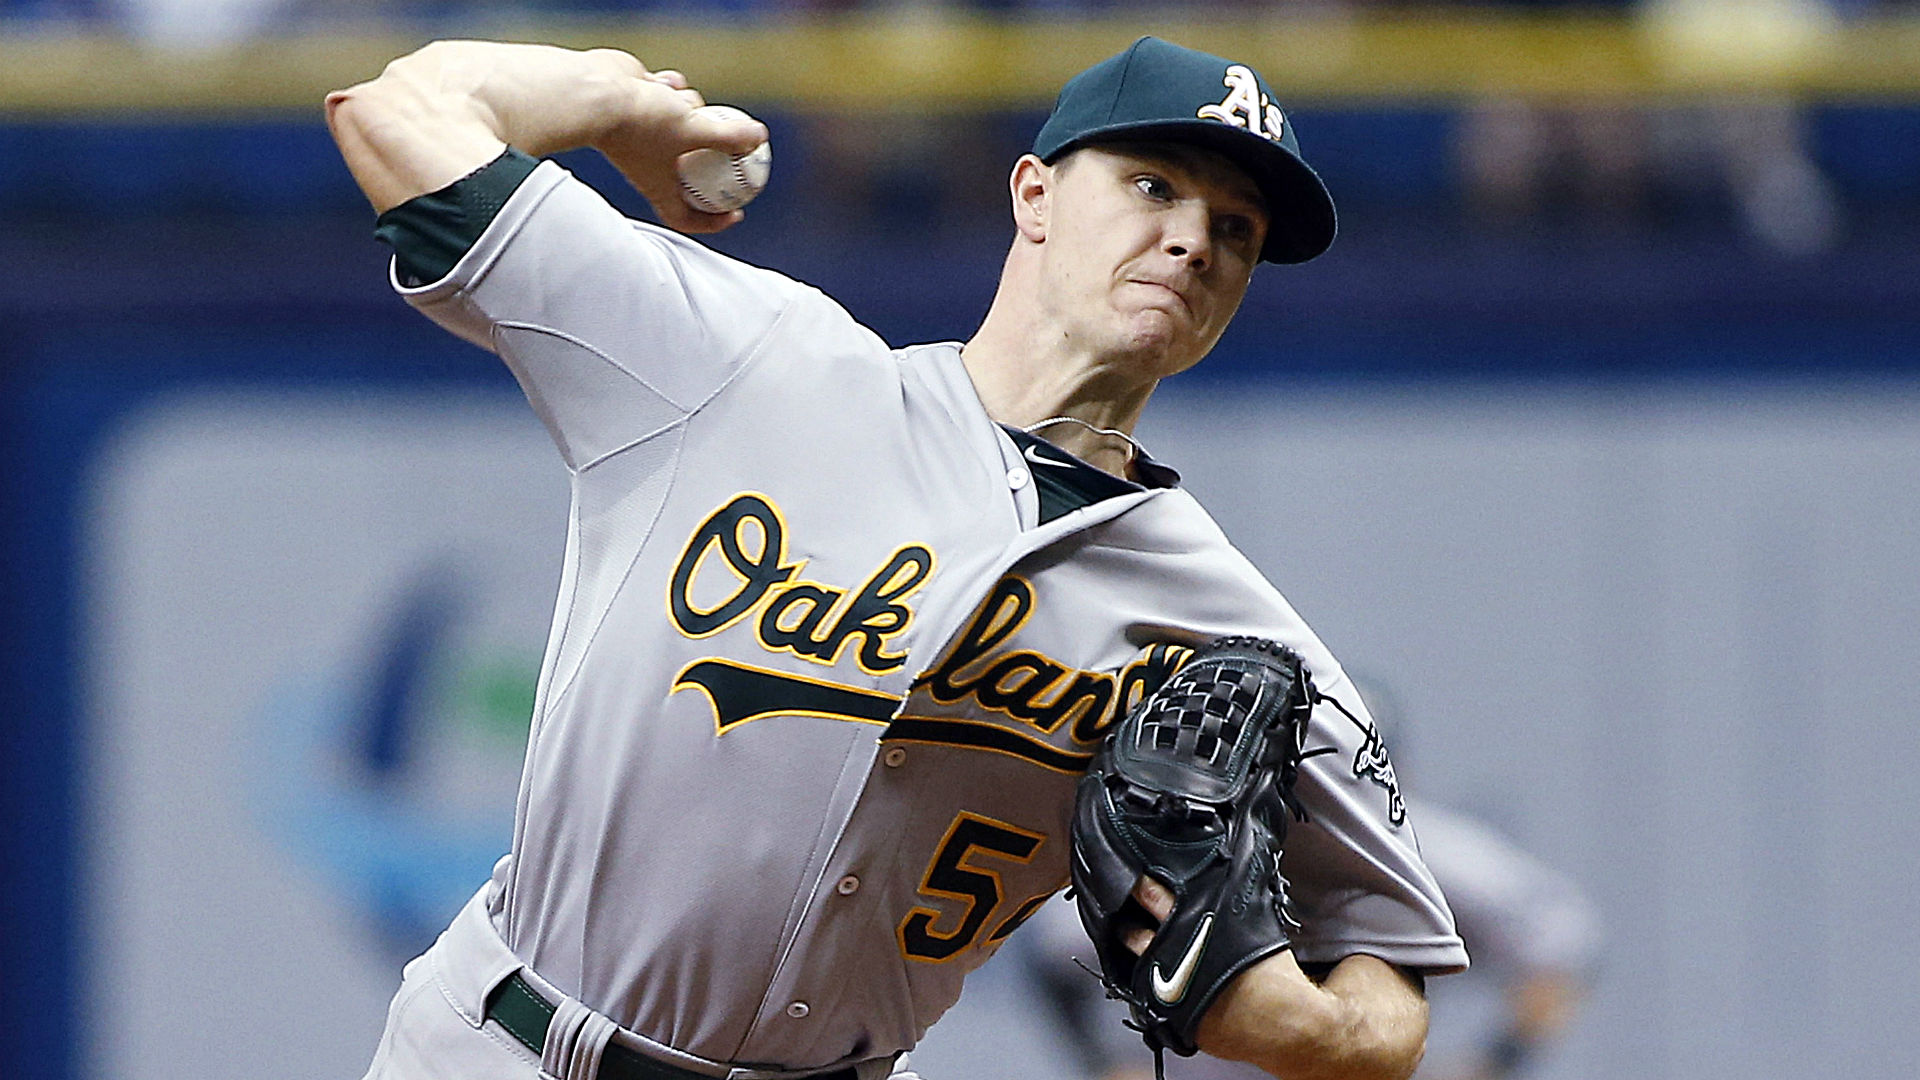 Sonny Gray, released from quarantine, recovers after bout with salmonella